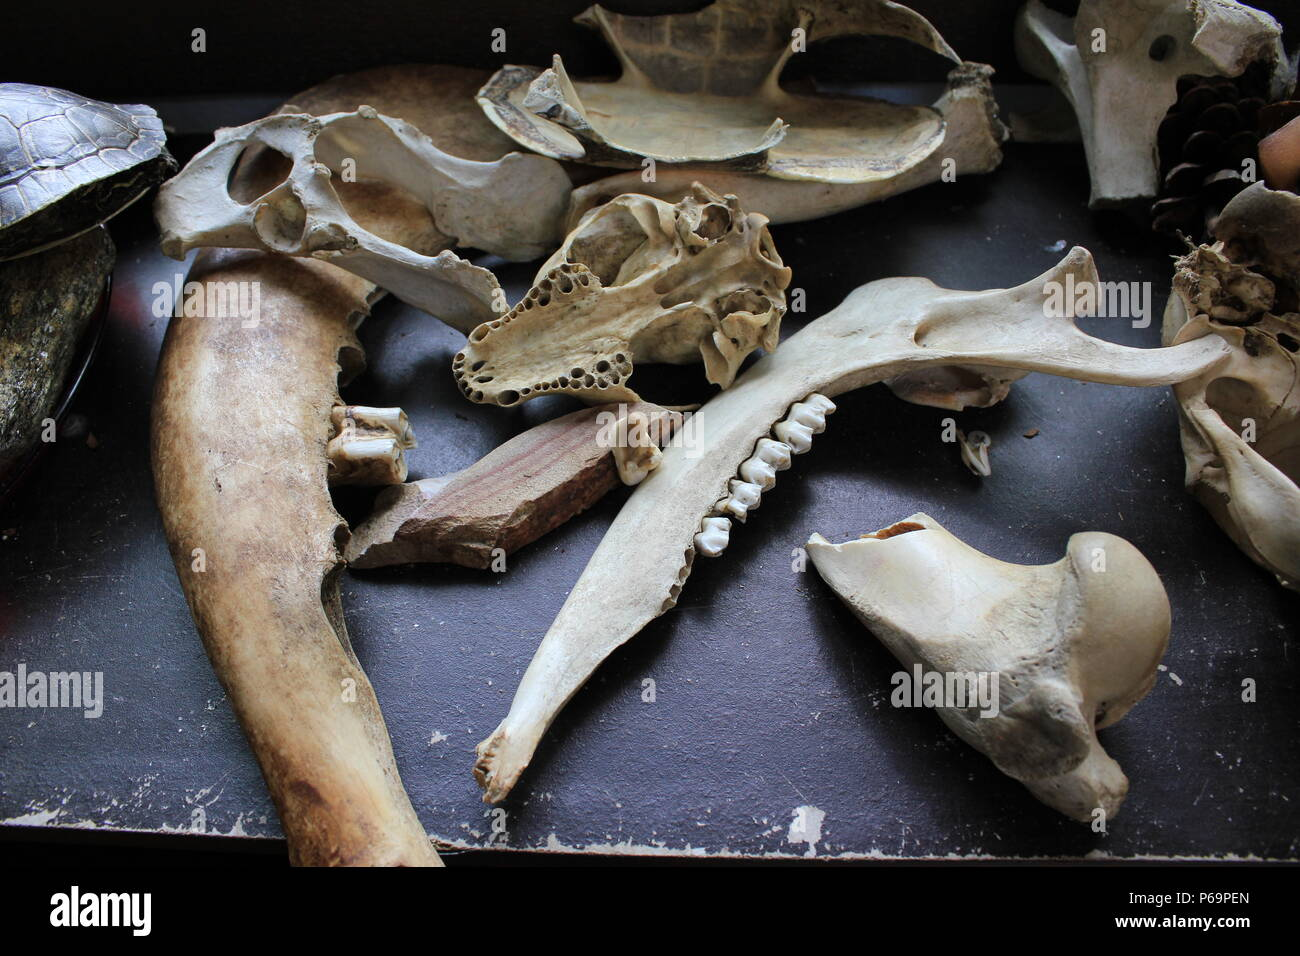 Animal body parts in display at the children's touching station at the Wildwood Nature Center in Park Ridge, Illinois. - Stock Image